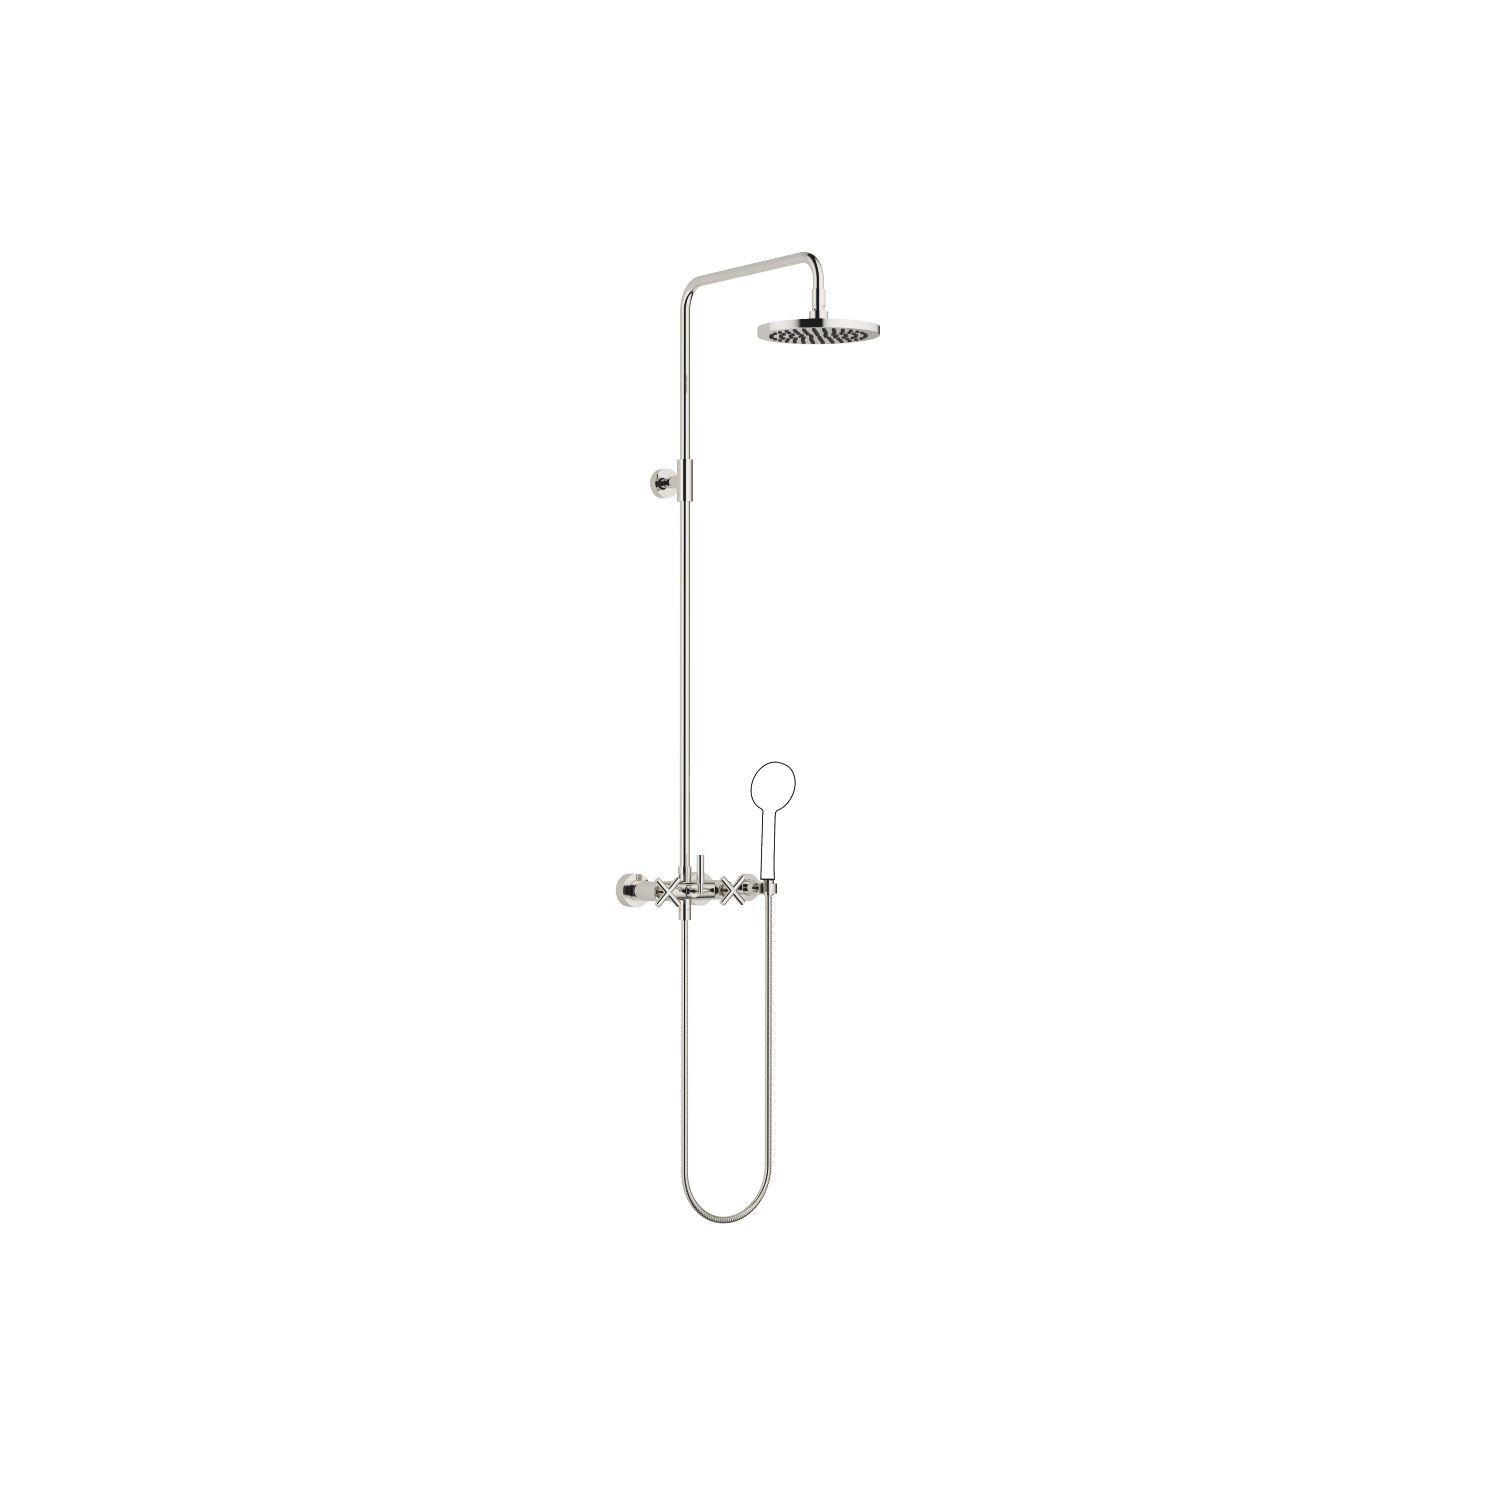 Showerpipe without hand shower - platinum